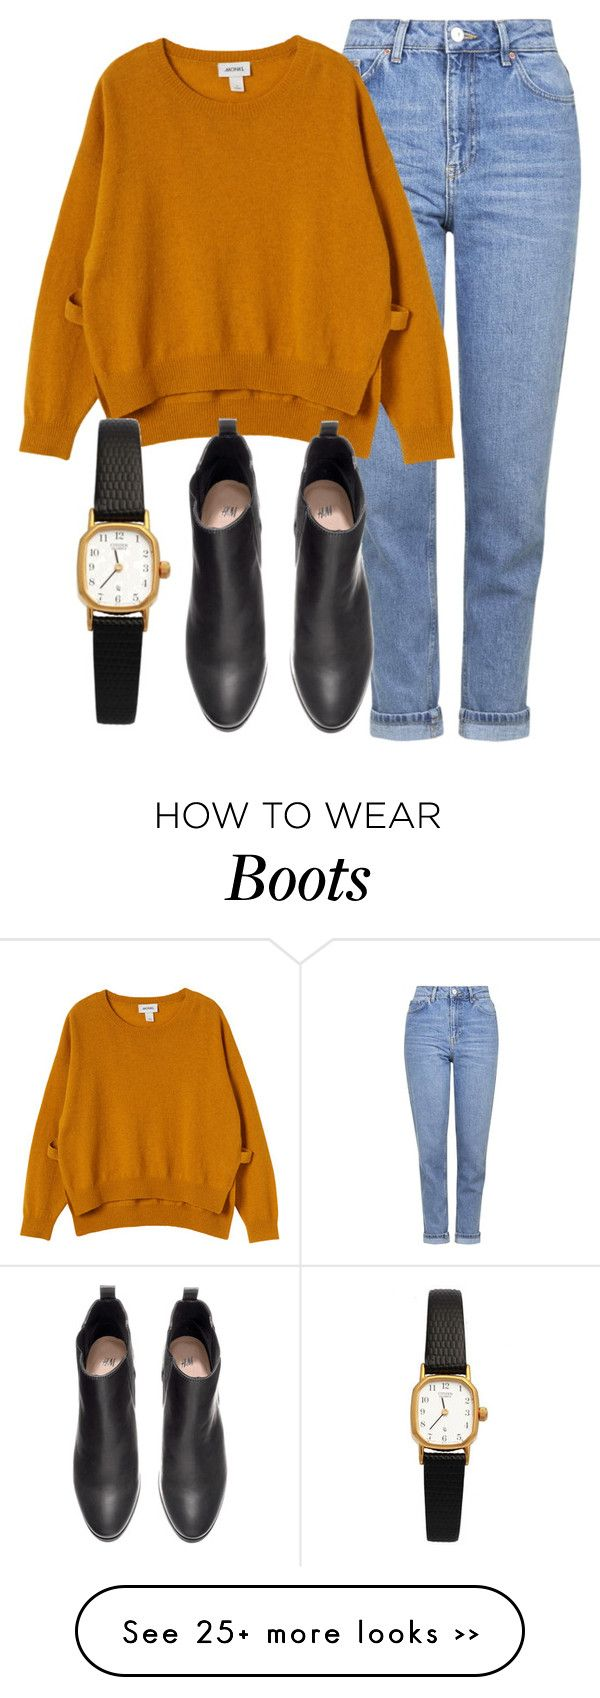 """Untitled #4289"" by laurenmboot on Polyvore featuring Topshop, Monki, H&M and American Apparel"